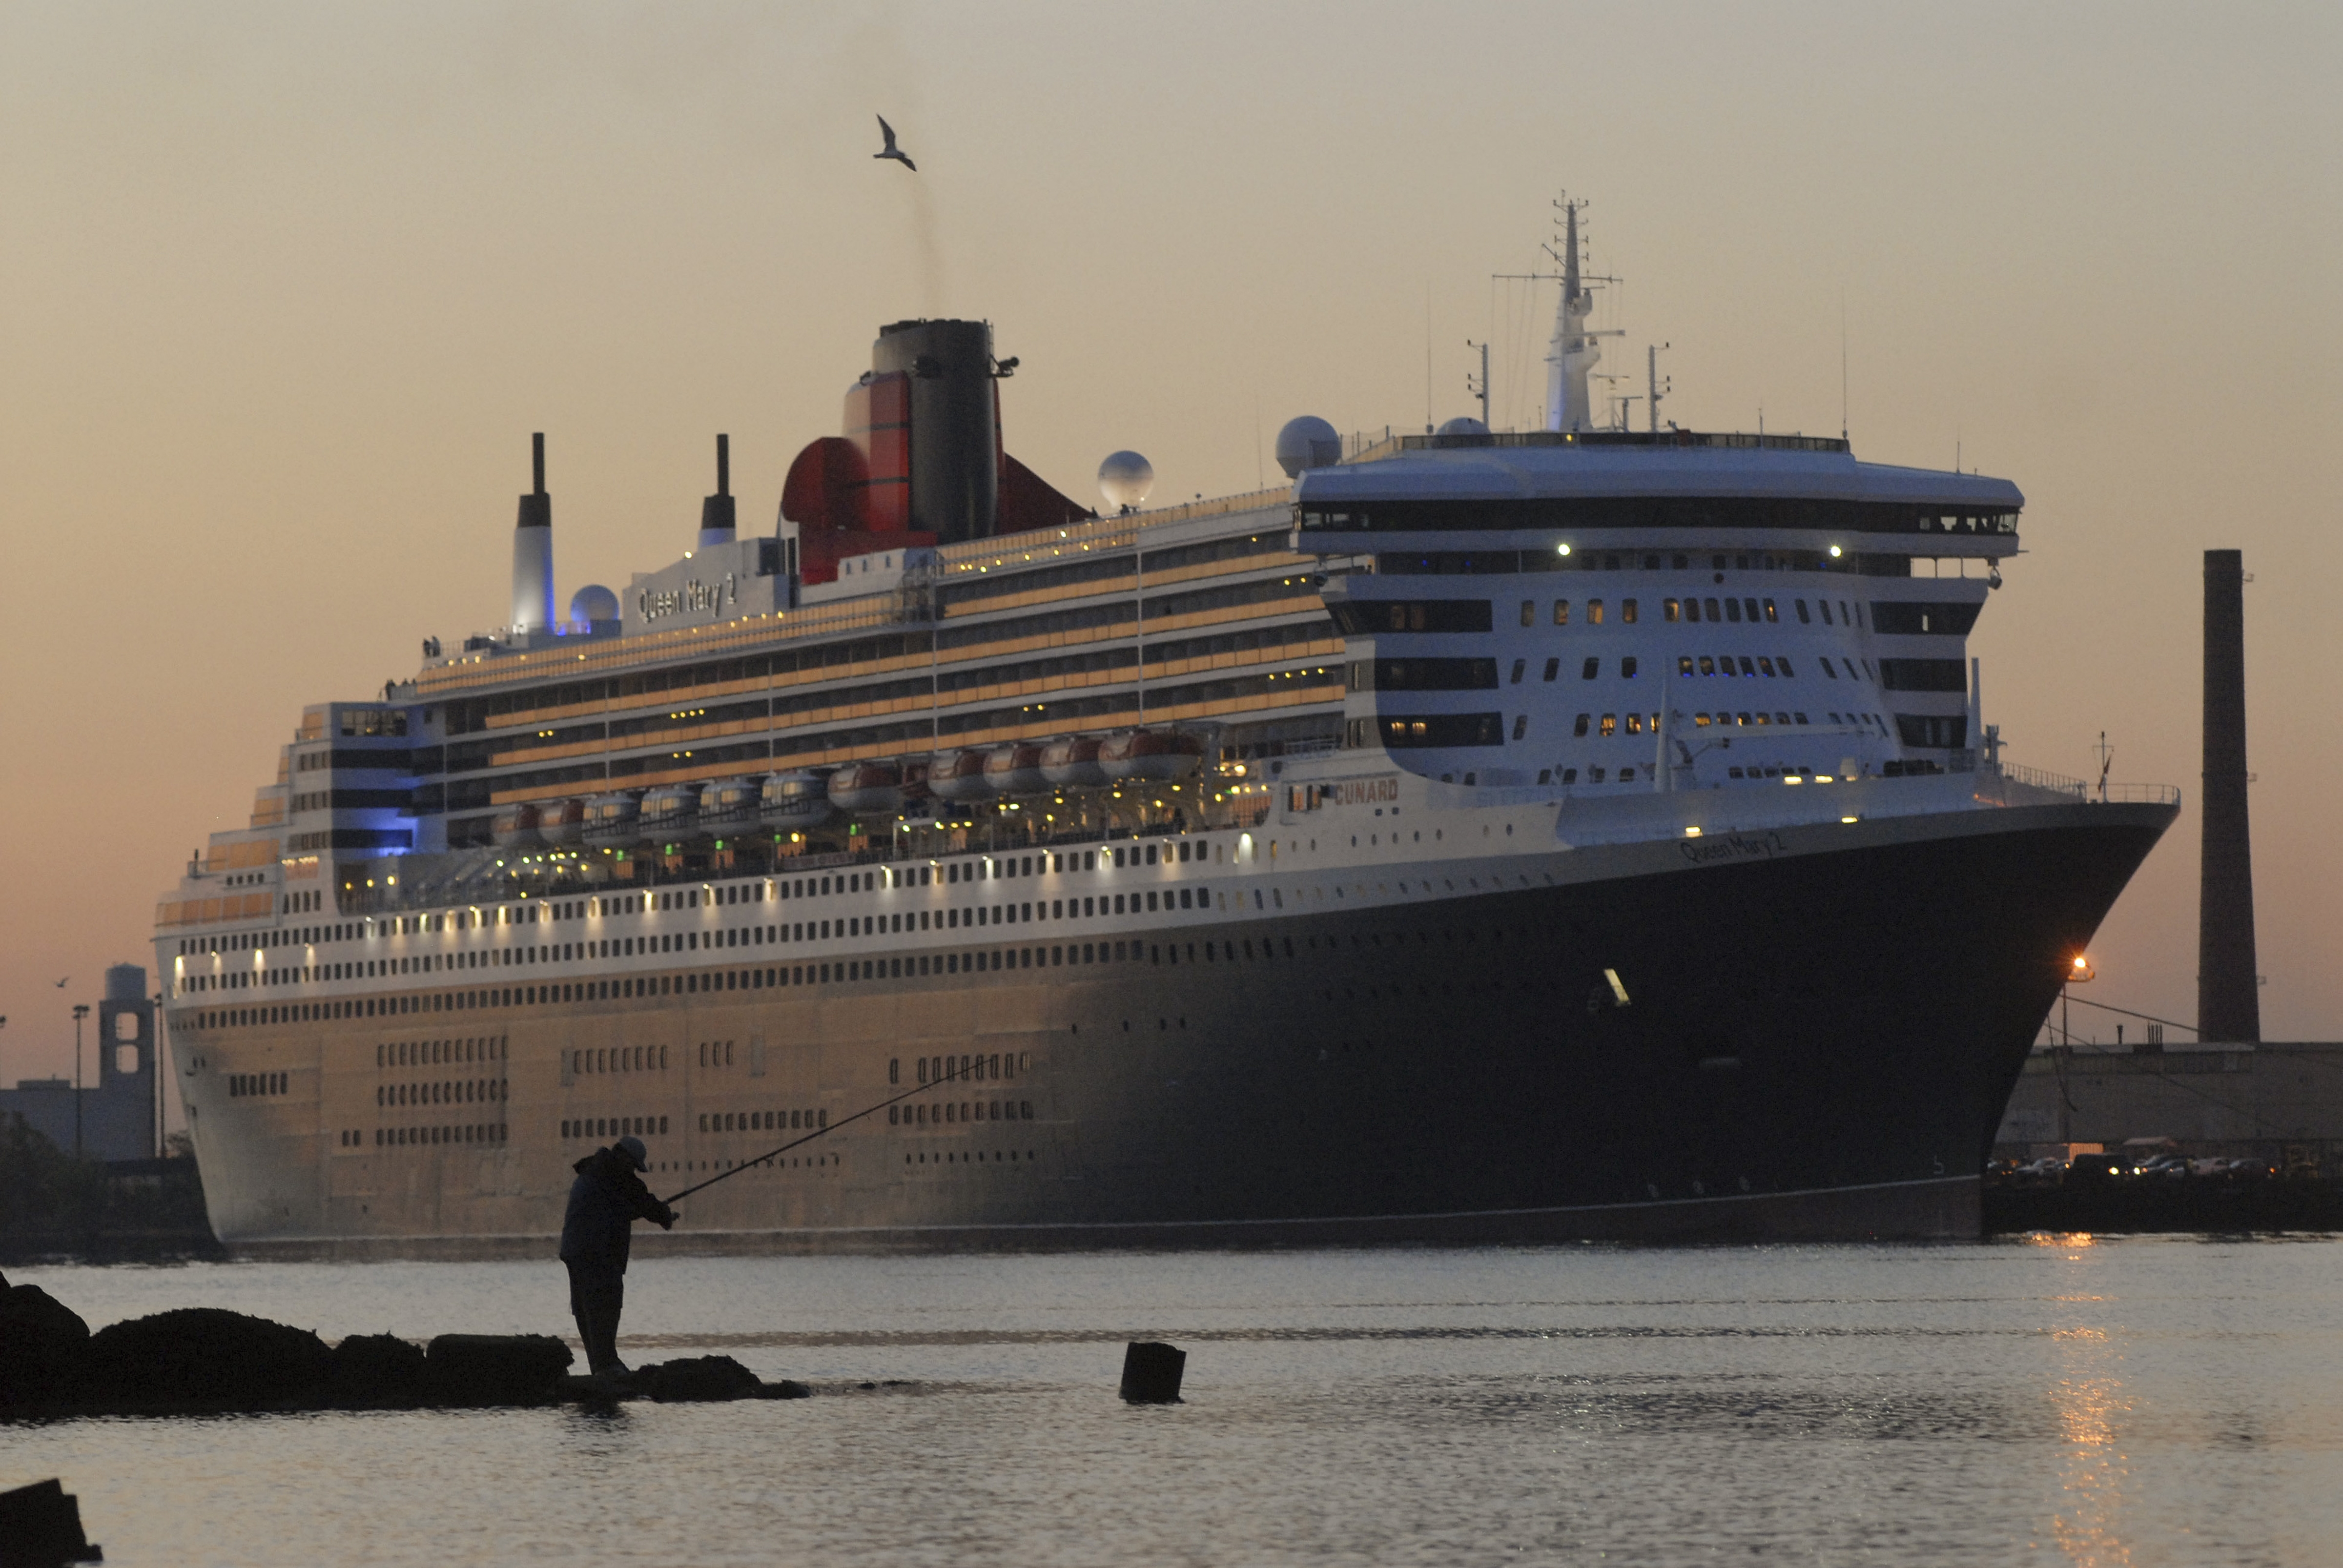 Vacationers will have plenty to consider when deciding what size ship to book for a cruise.